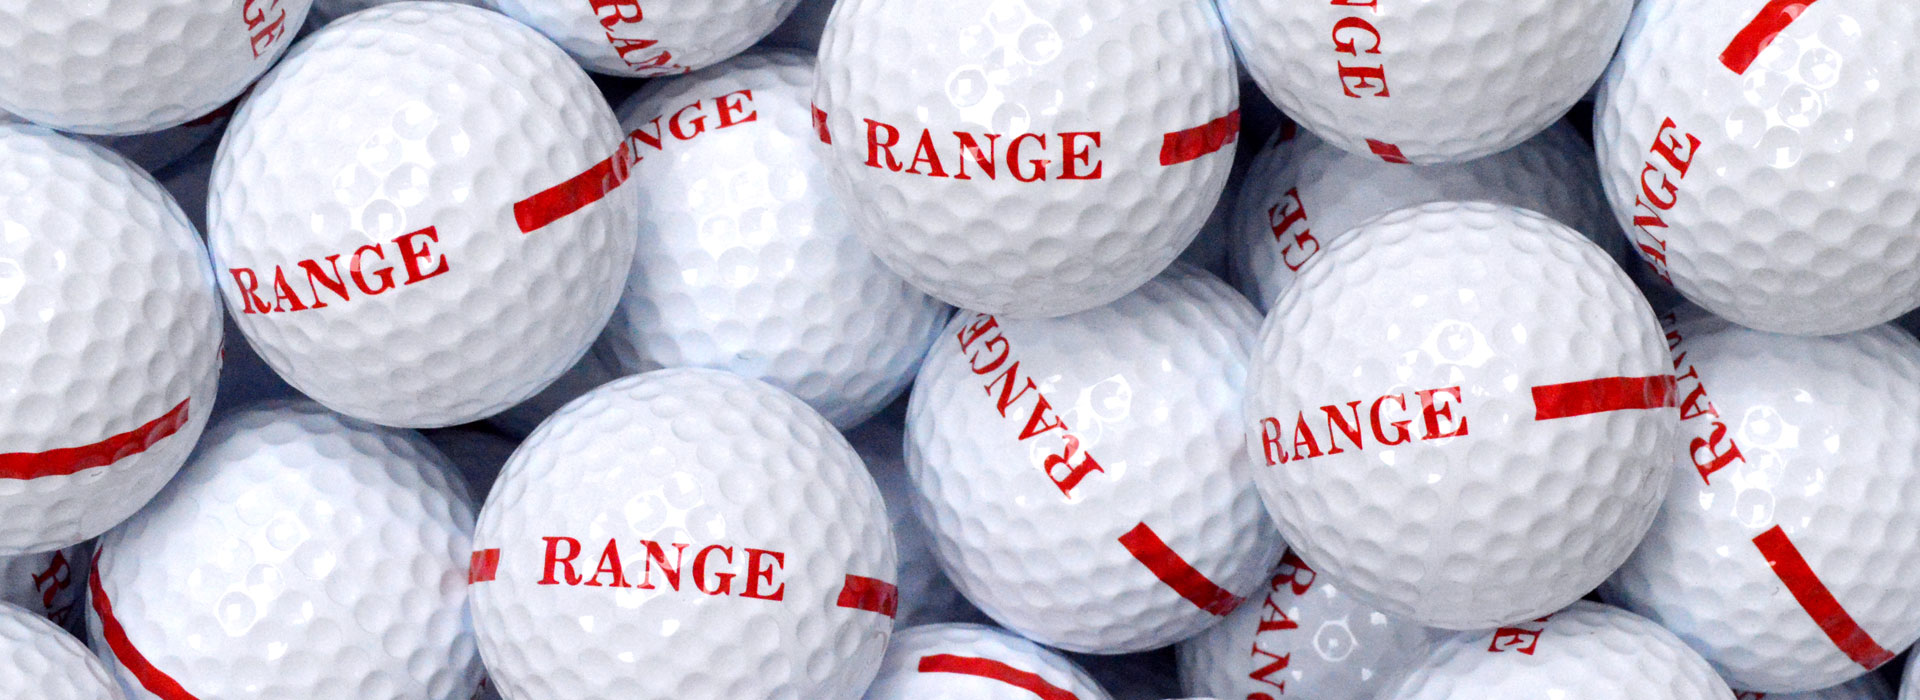 1 Piece White Golf Balls